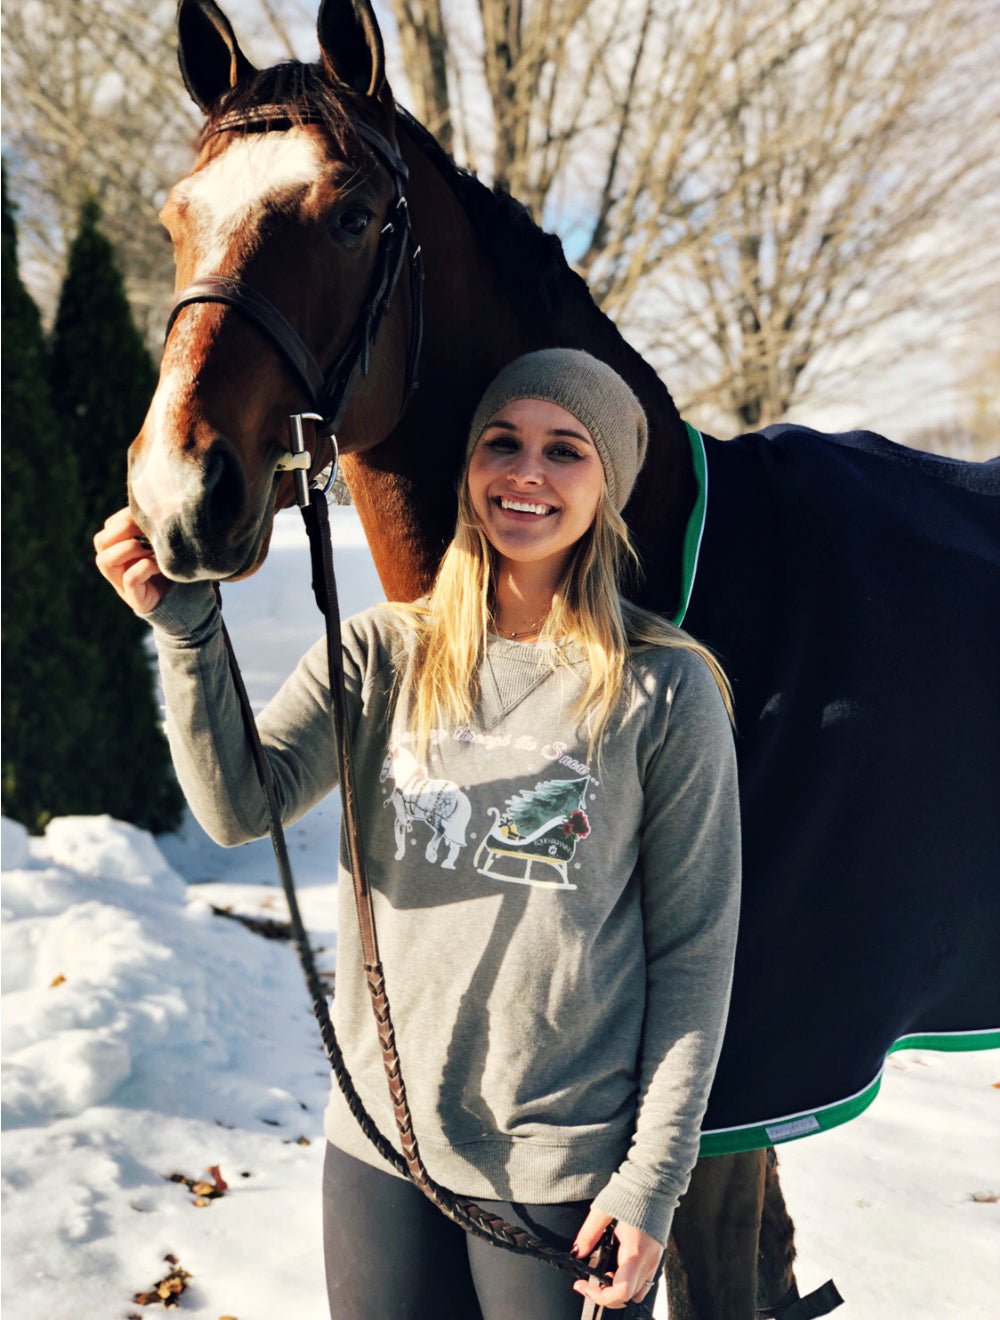 Equestrianista One Horse Open Sleigh holiday pullover modeled by the East Coast Equestrian Lifestyle Blogger.